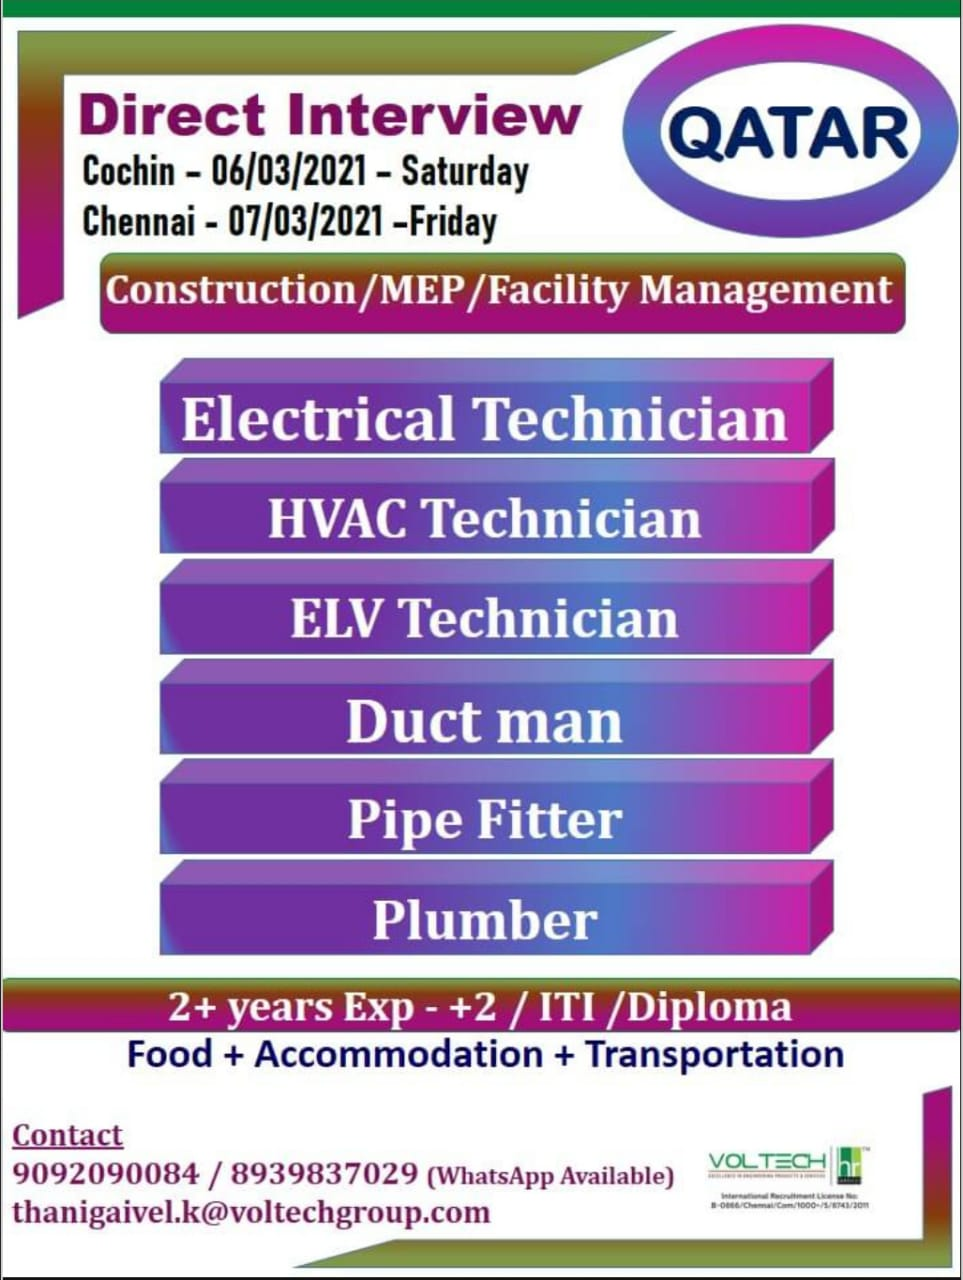 URGENTLY REQUIRED FOR CONSTRUCTION COMPANY-QATAR